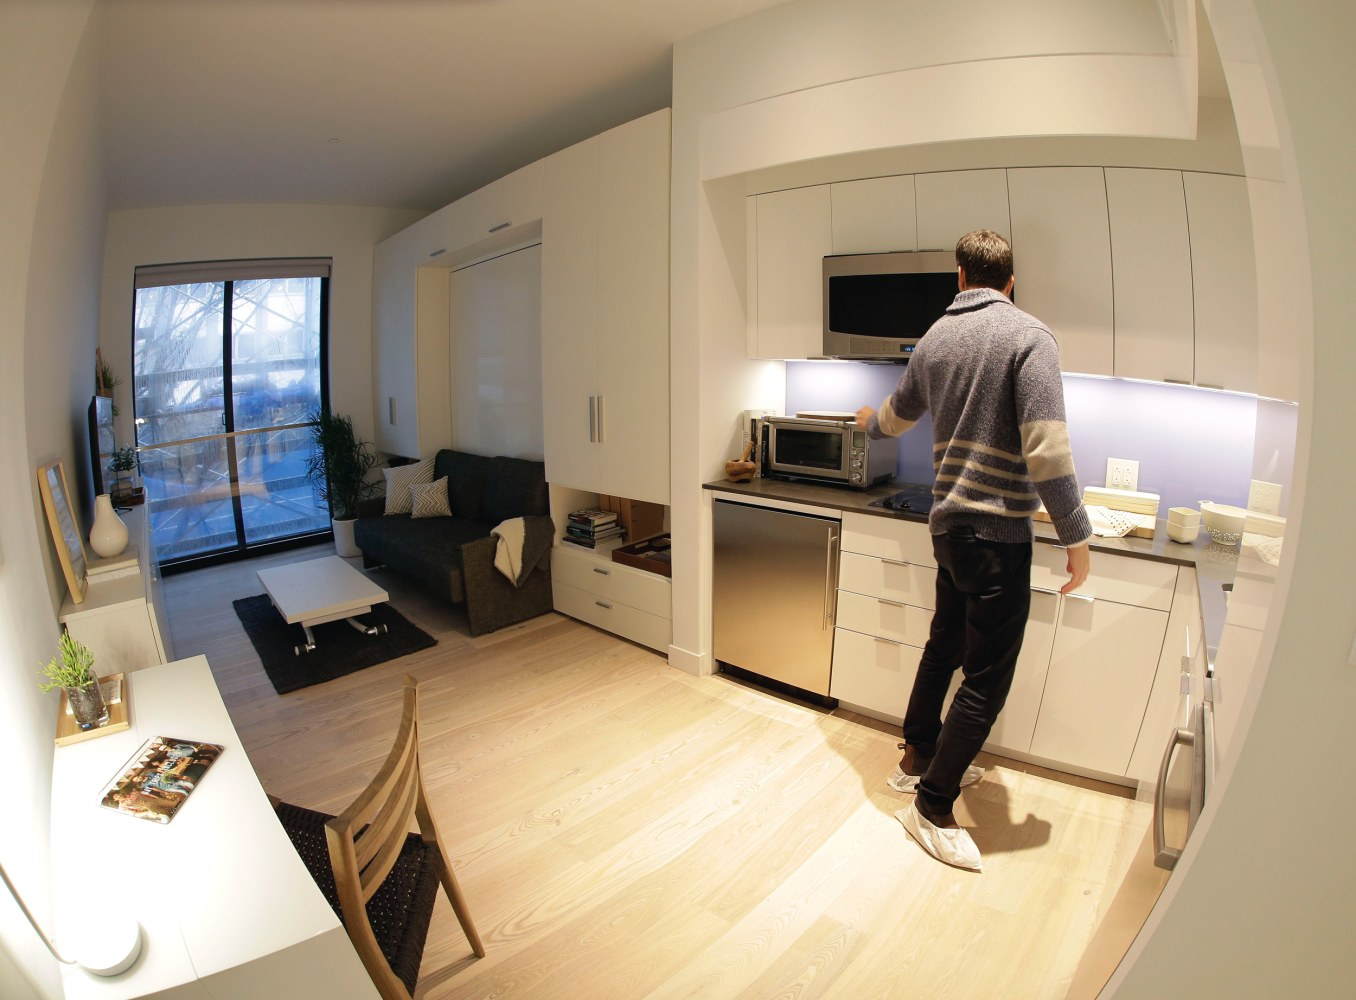 Affordable or 39 offensive 39 nyc moves to ease rules on tiny for Tiny modern apartment